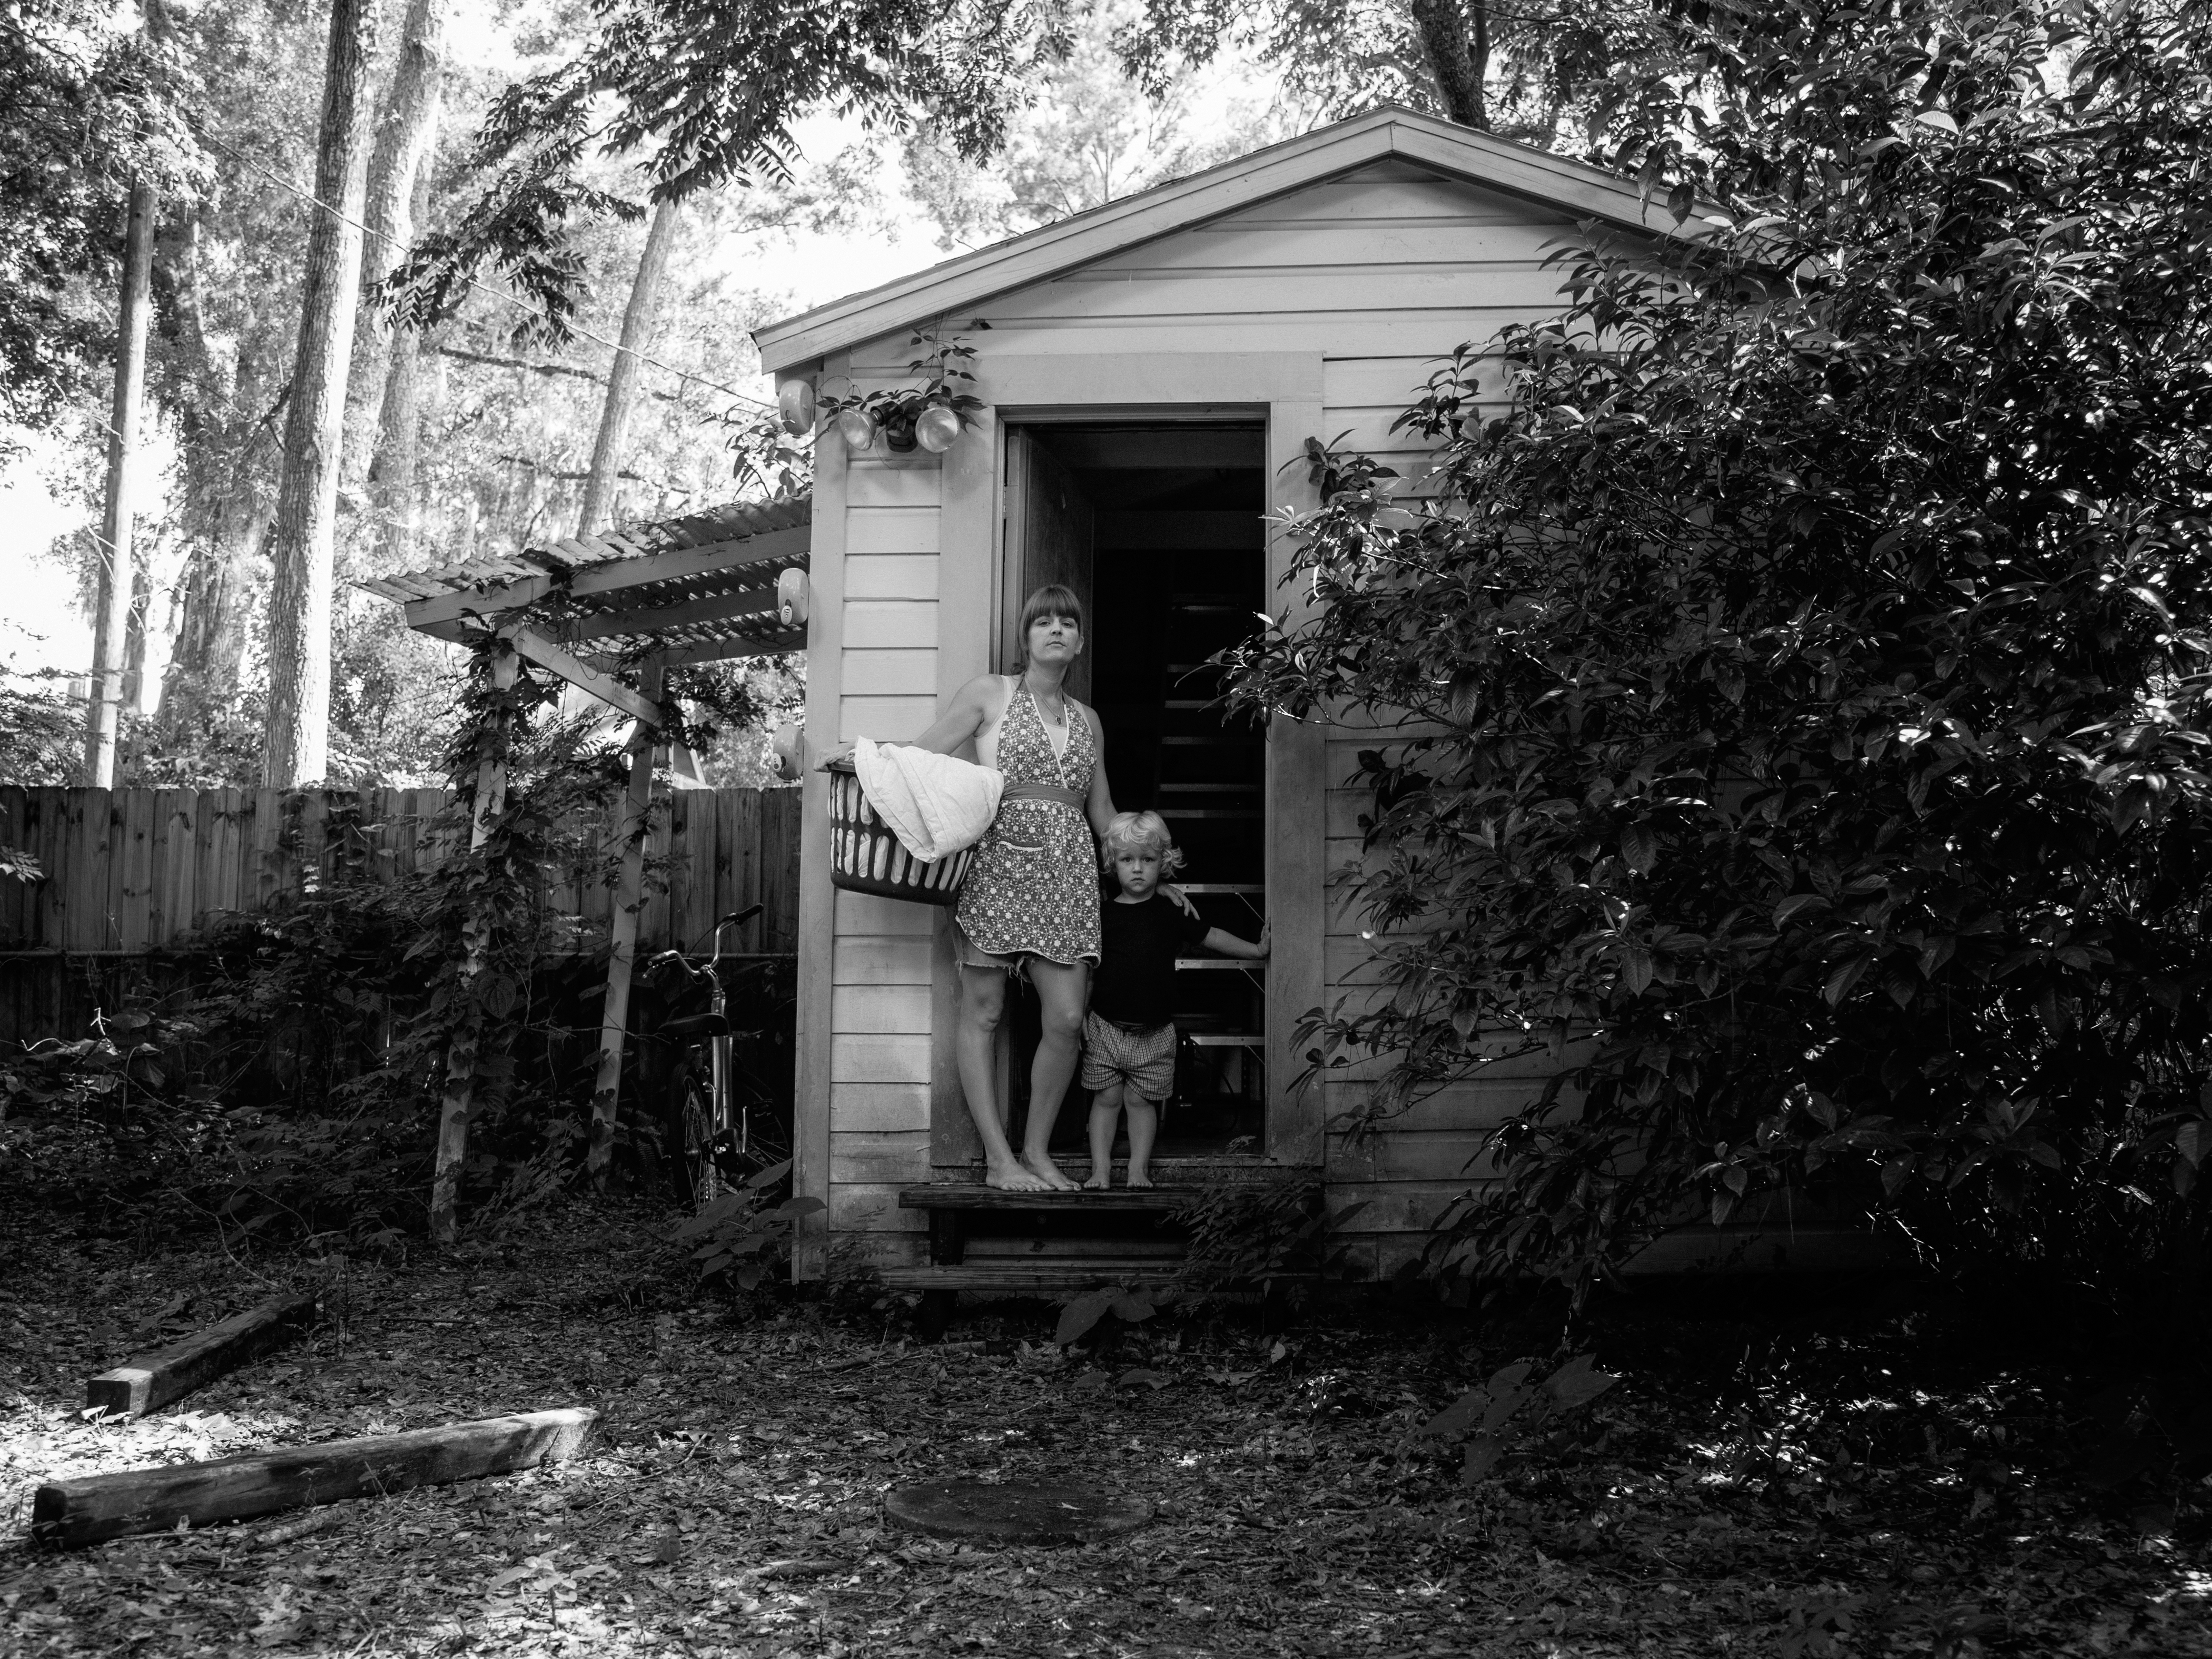 Amanda-ODonoughue-Domestic-Prowess-Gainesville-FLA-WK36